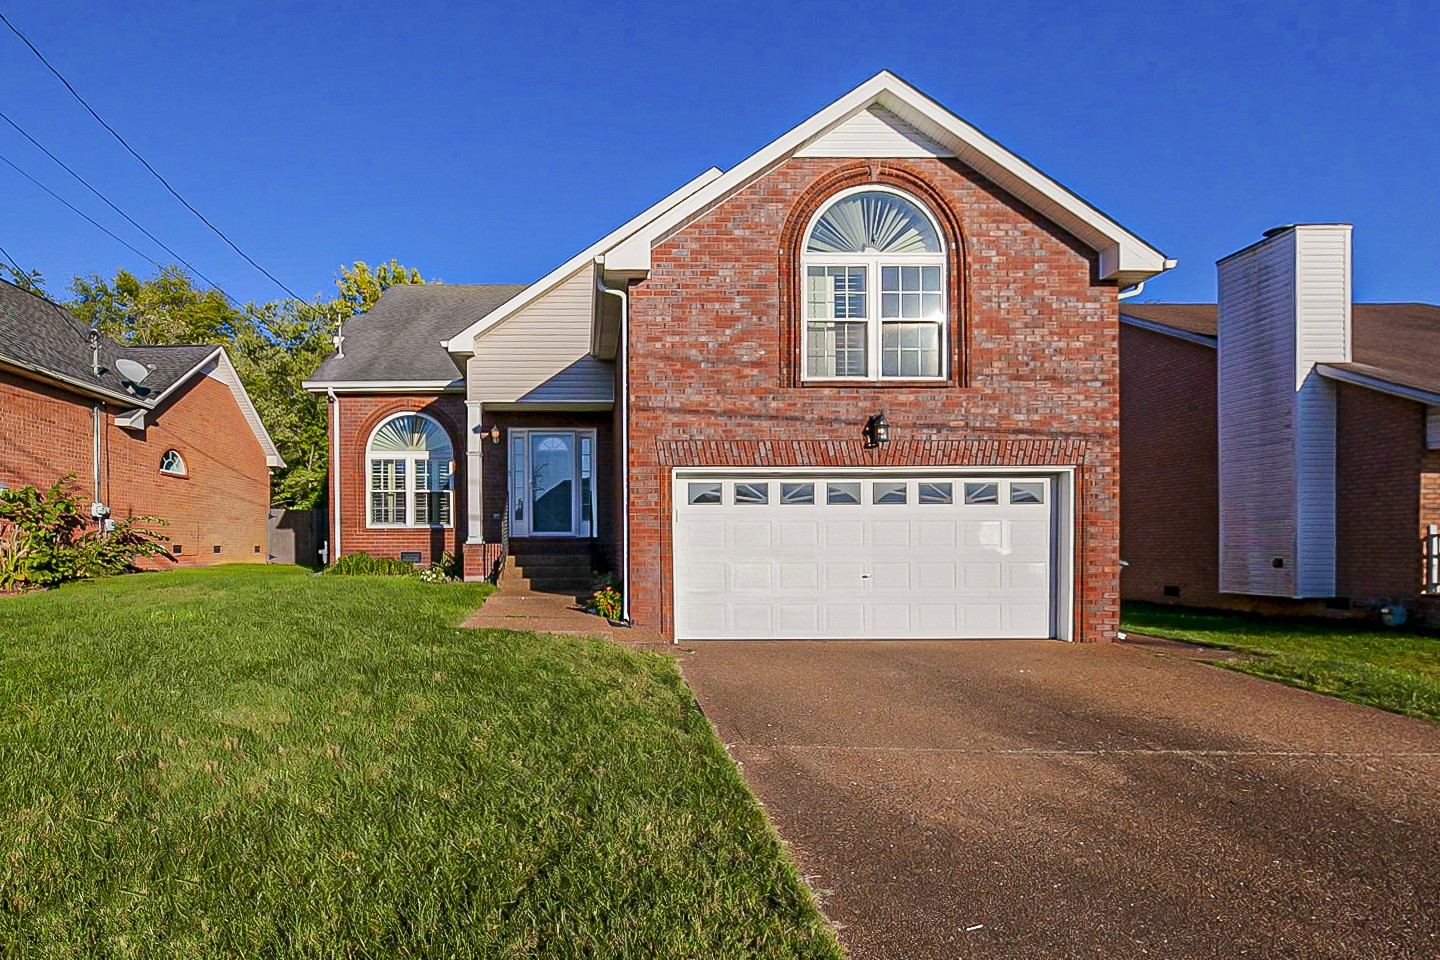 Stunning Home in conventionally located Glen Oaks Subdivision, easy access to 386, shopping dining and hospital. Largest home in the neighborhood full of updates, Large family room with vaulted ceilings, main floor primary suite. Spacious fenced in backyard.